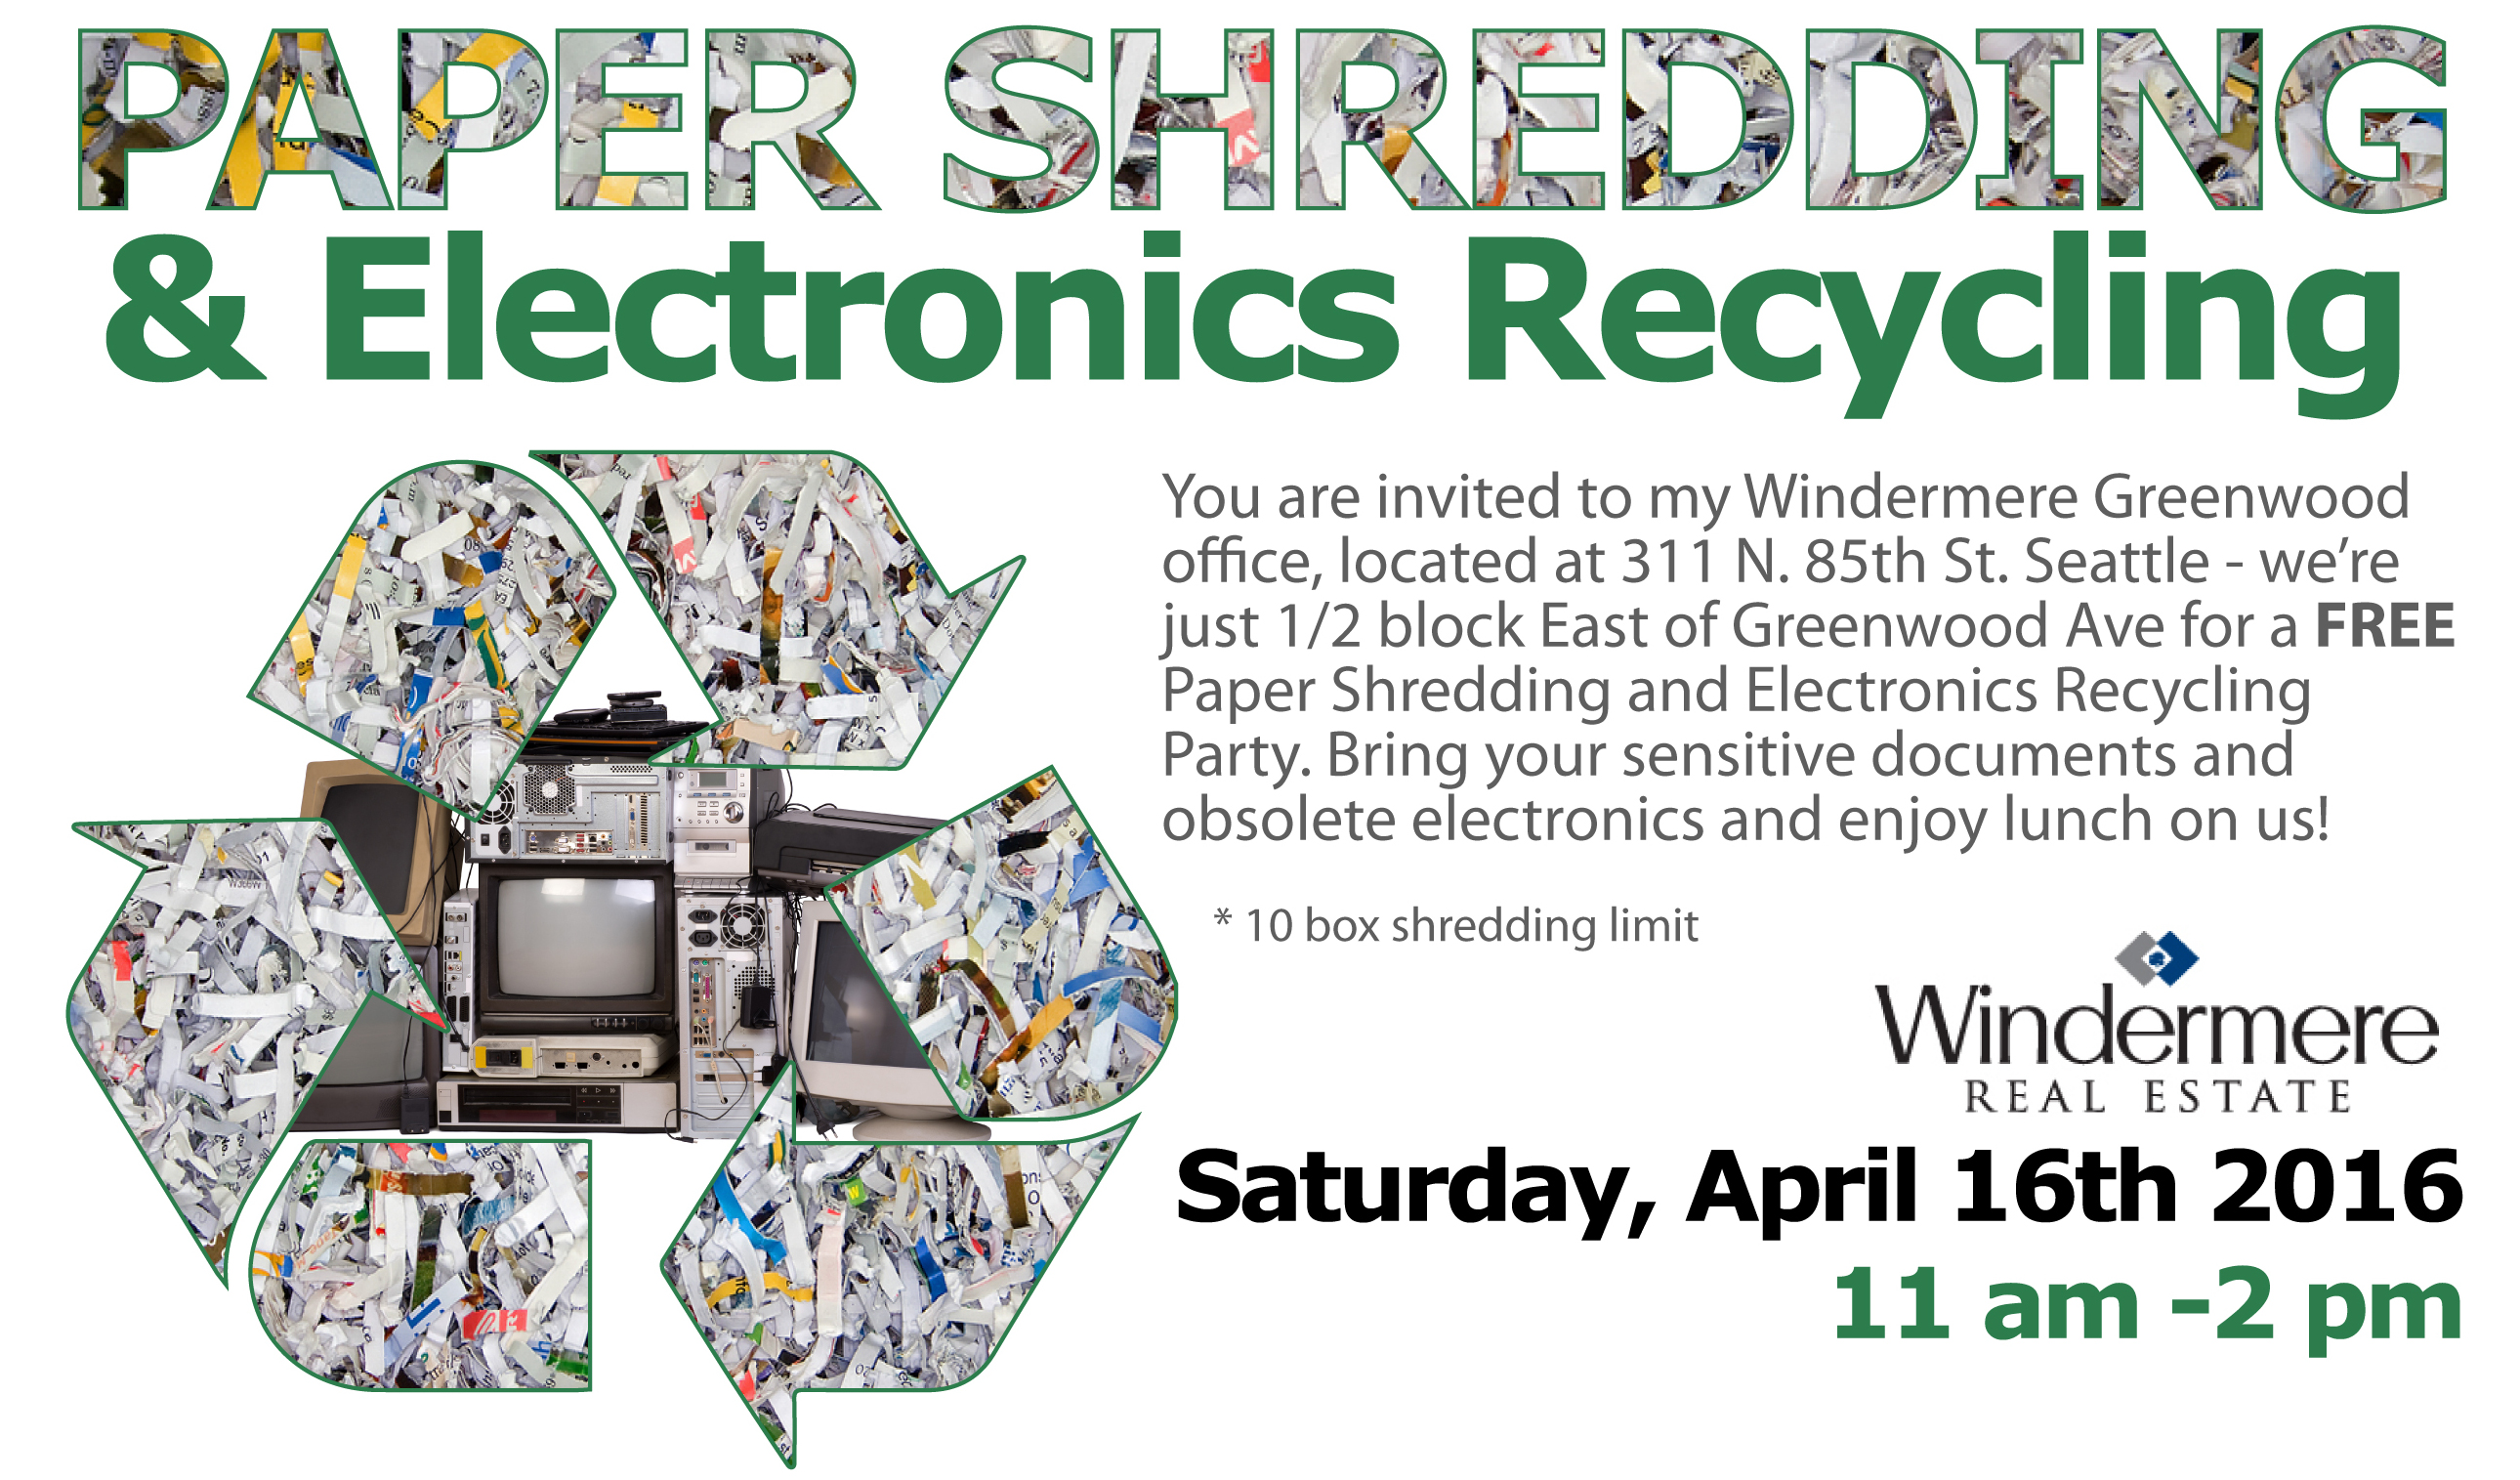 Annual Paper Shredding & Recycling Event